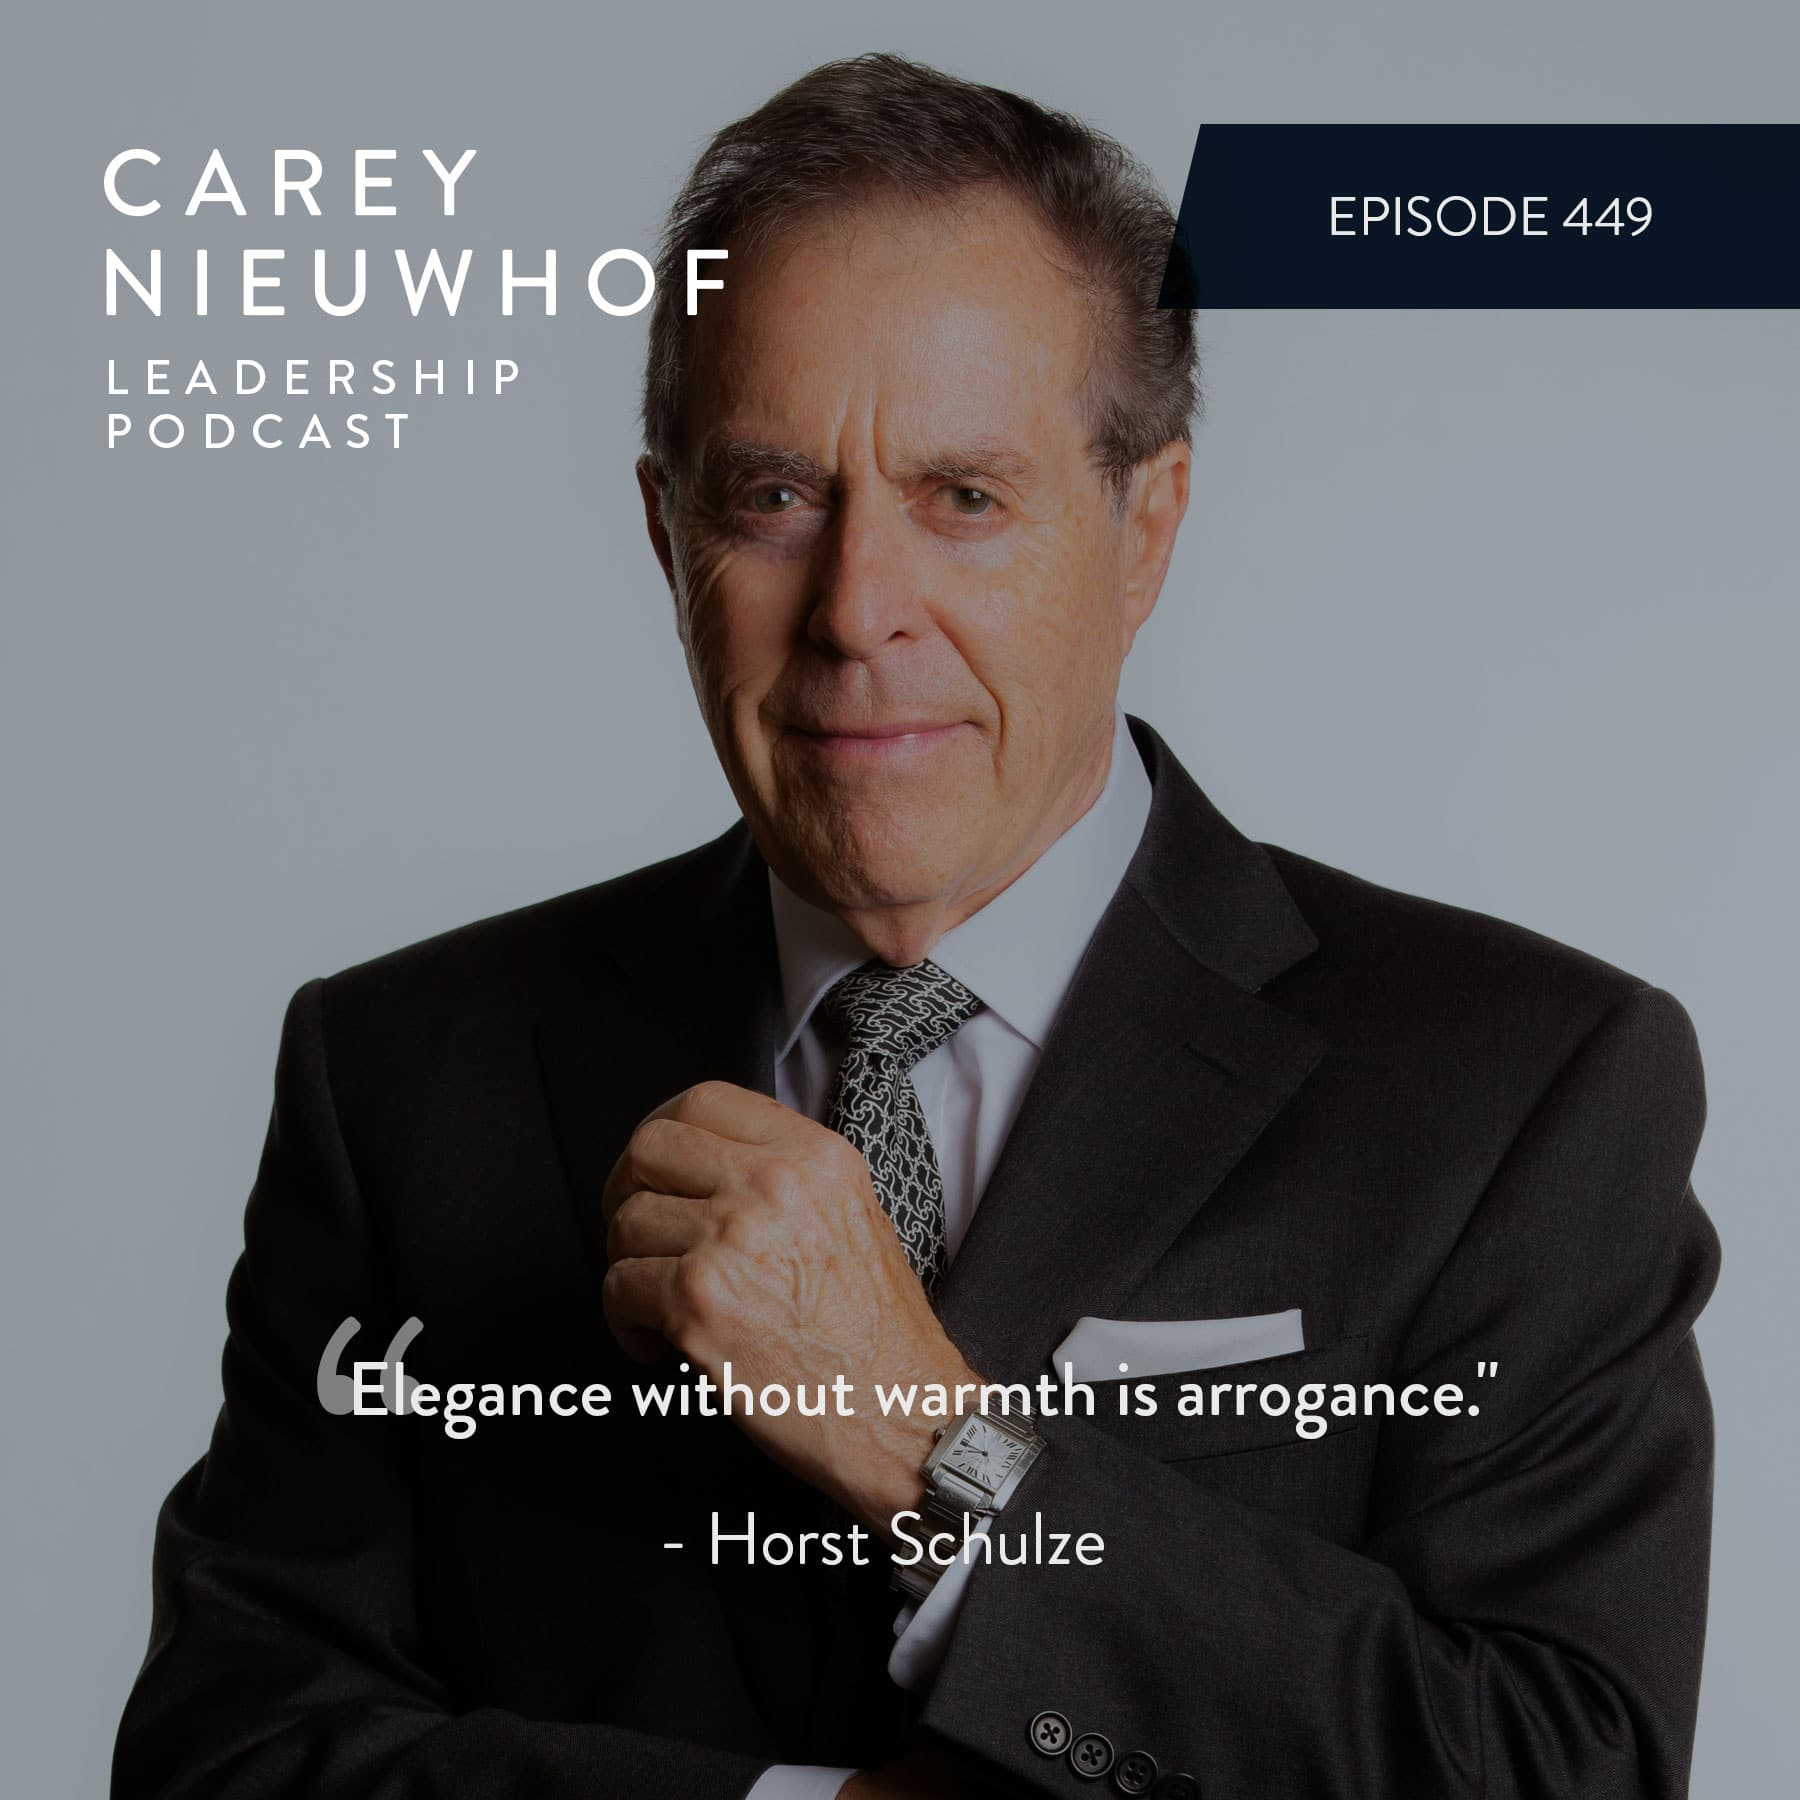 CNLP_PodcastSquare-Horst-Schulze_withEpisode#_1